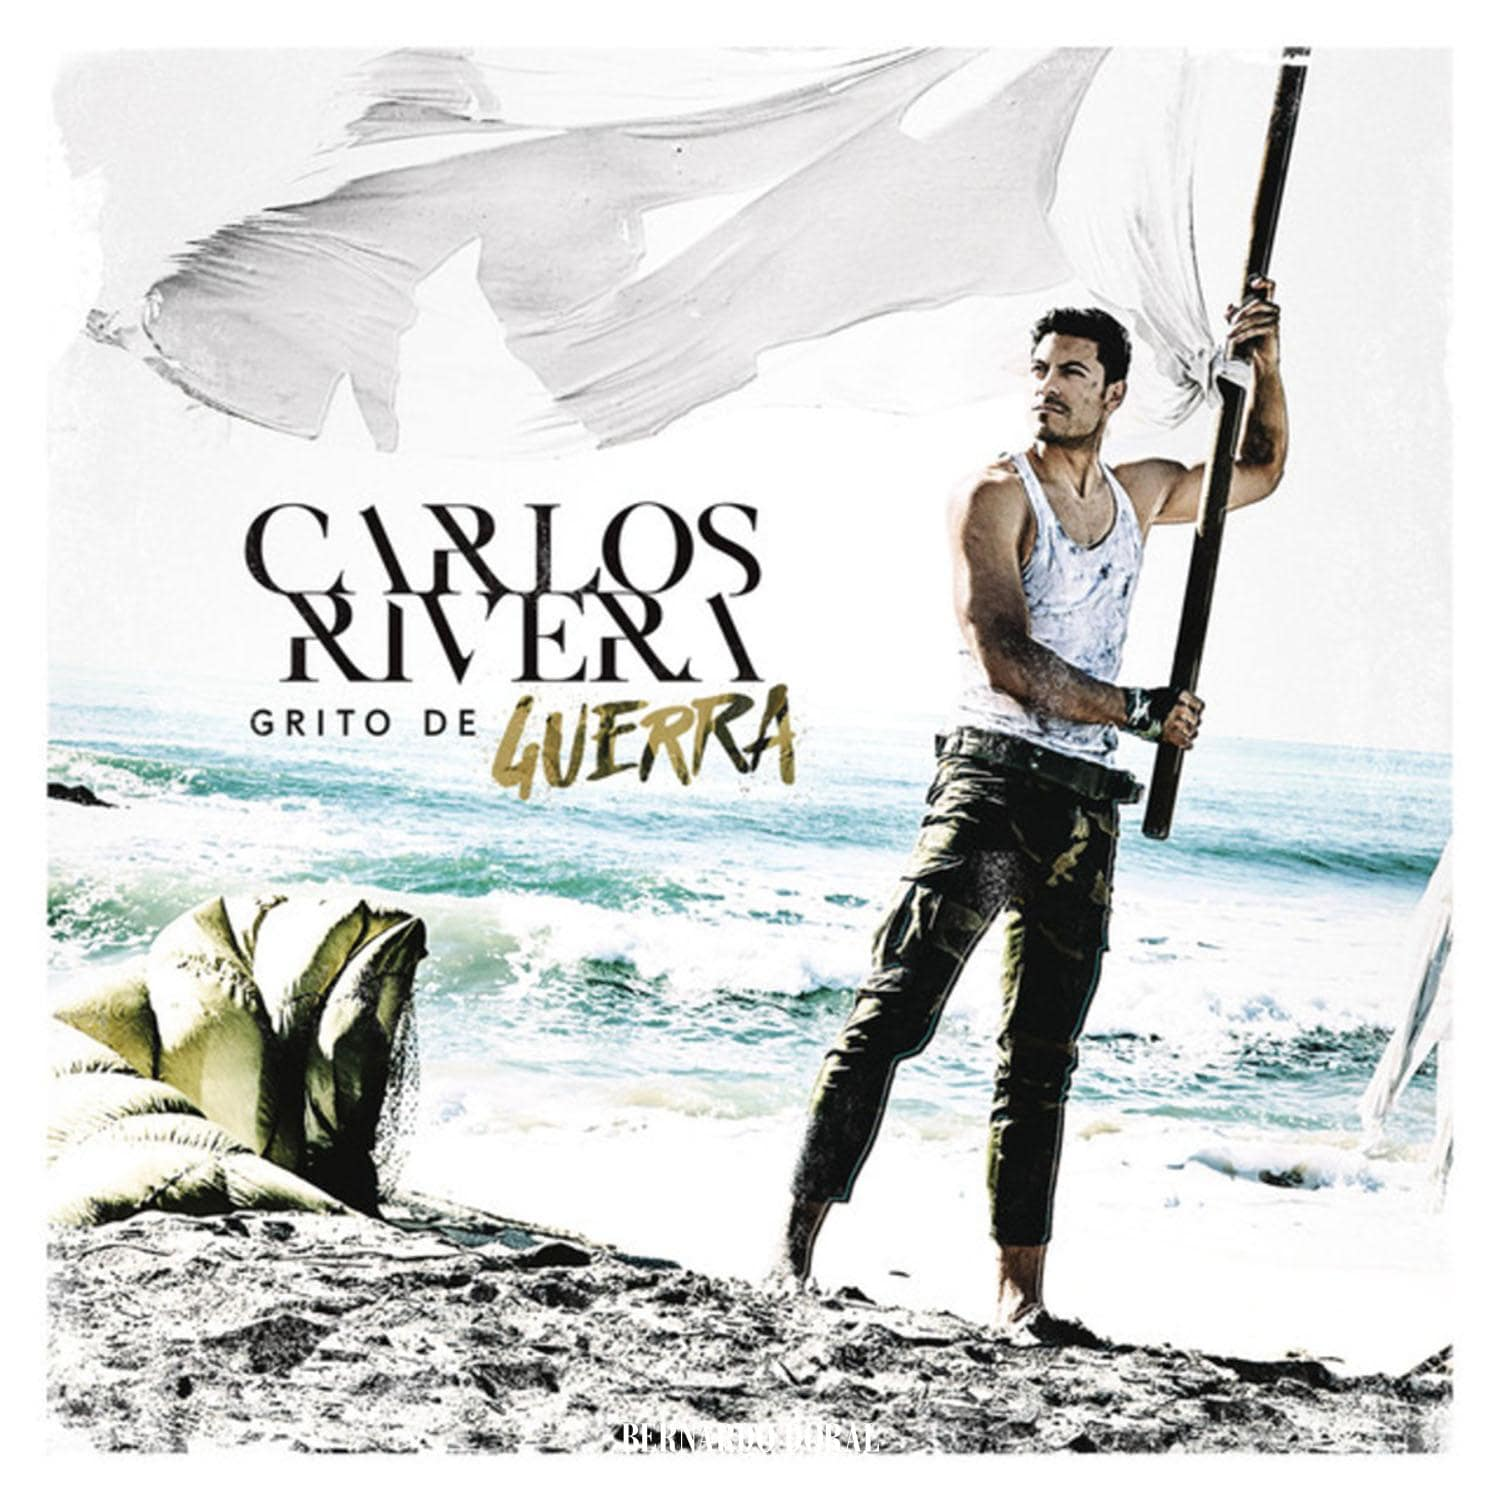 Carlos_Rivera-Grito_De_Guerra_Cd_Single-Frontal-min